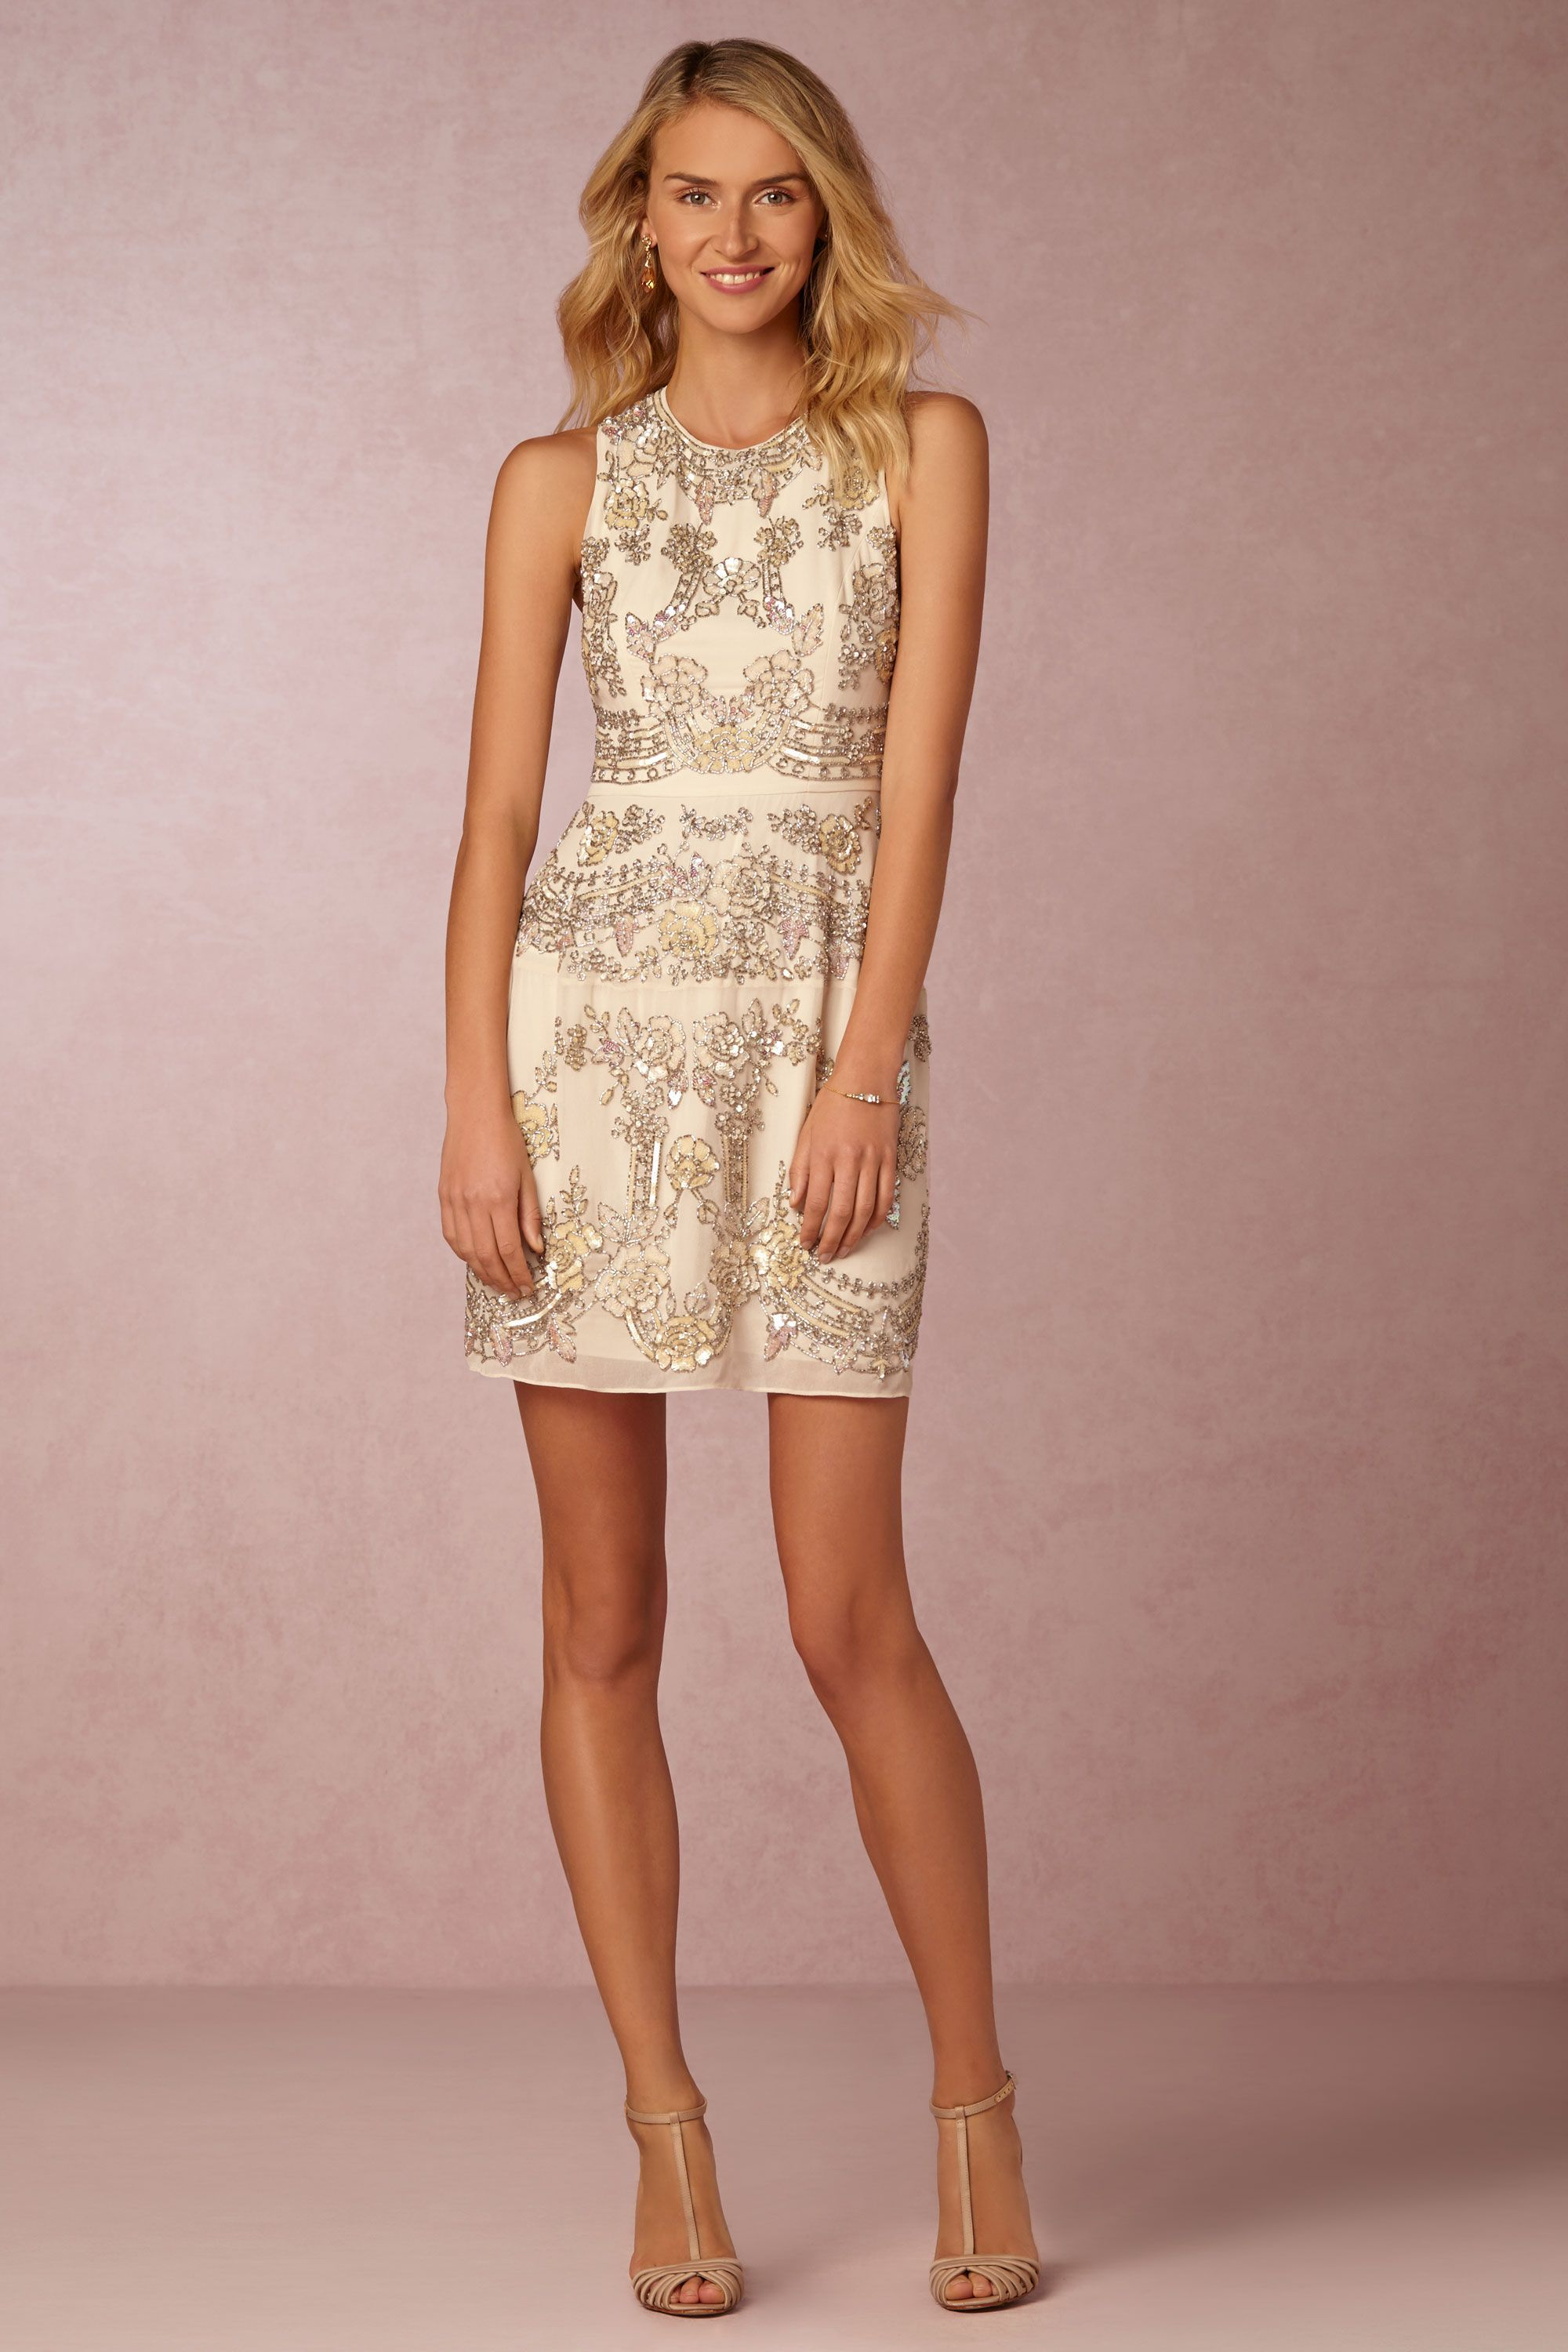 short, embellished party dress from Needle & Thread | Austin Dress ...